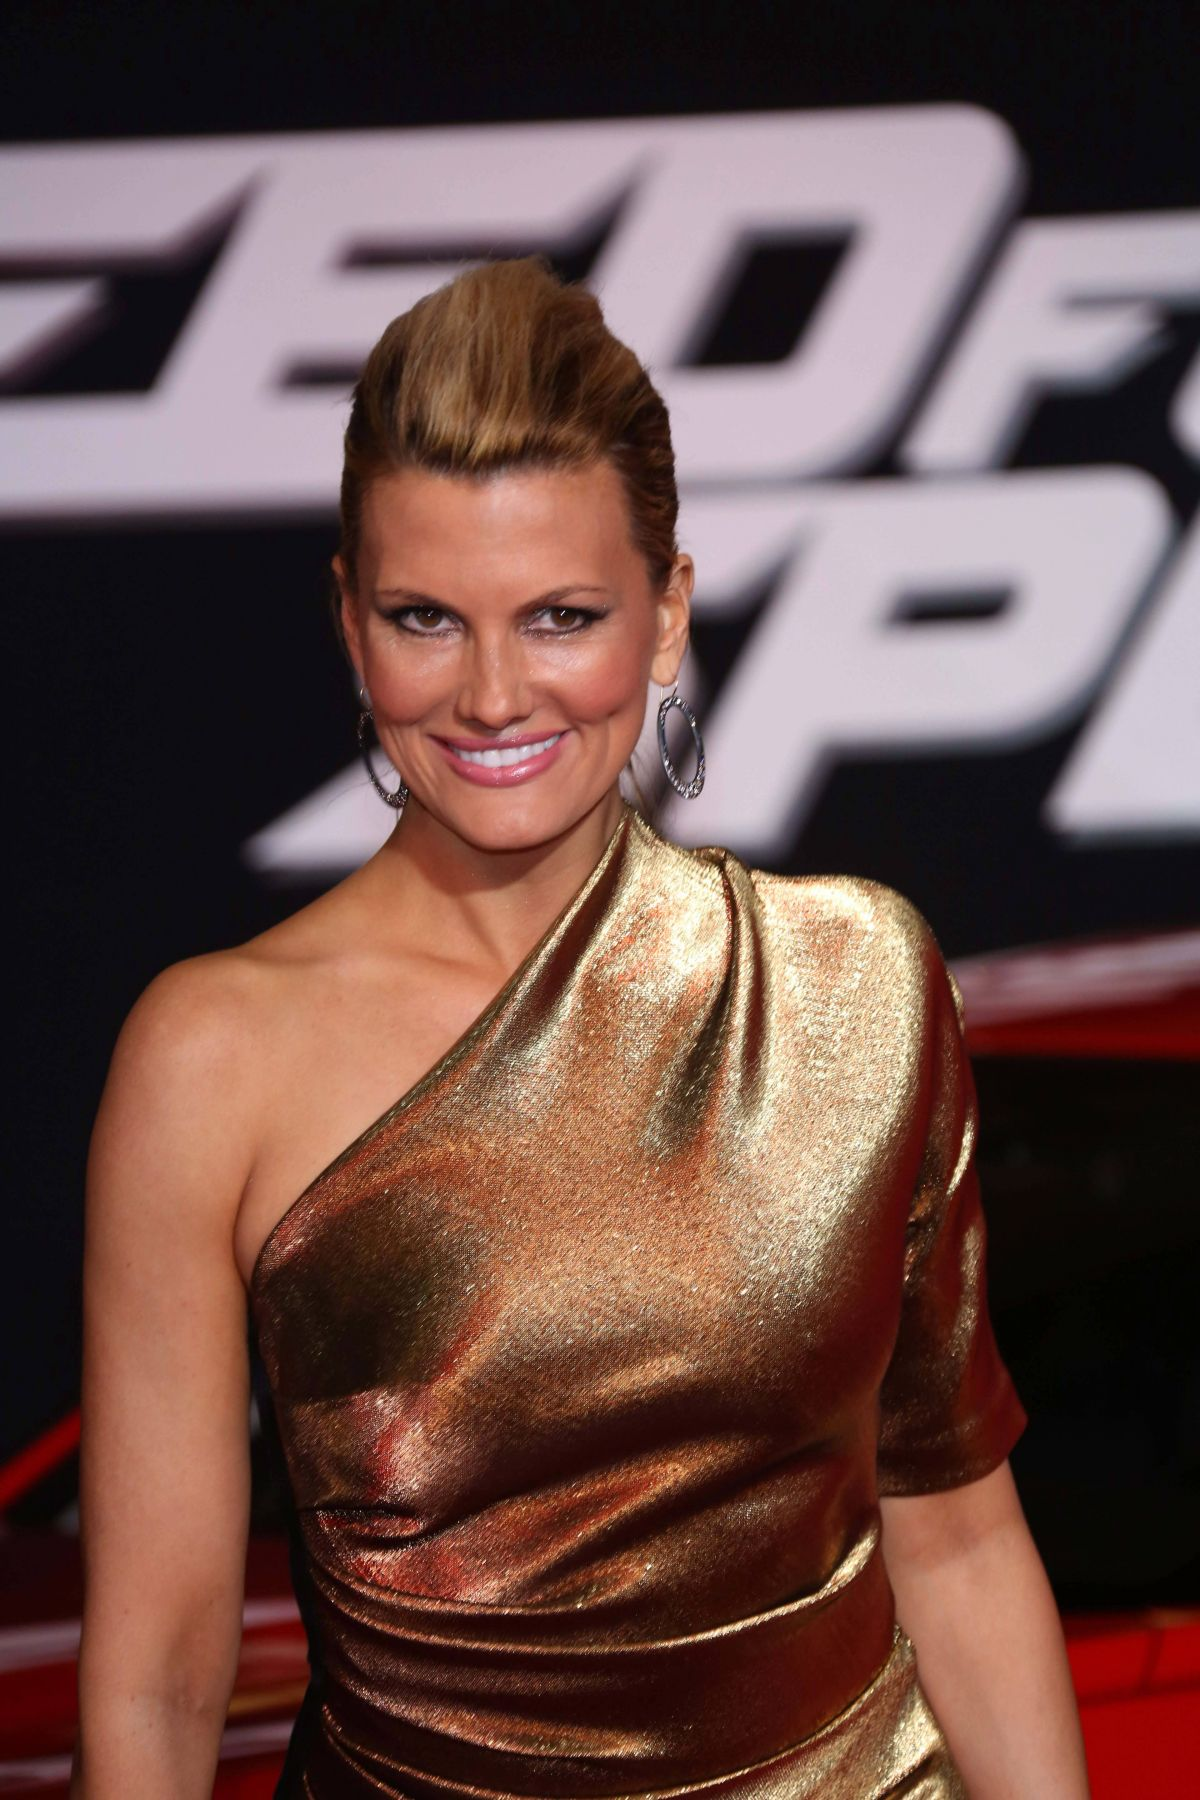 OURTNEY HANSEN at Need for Speed Premiere in Hollywood